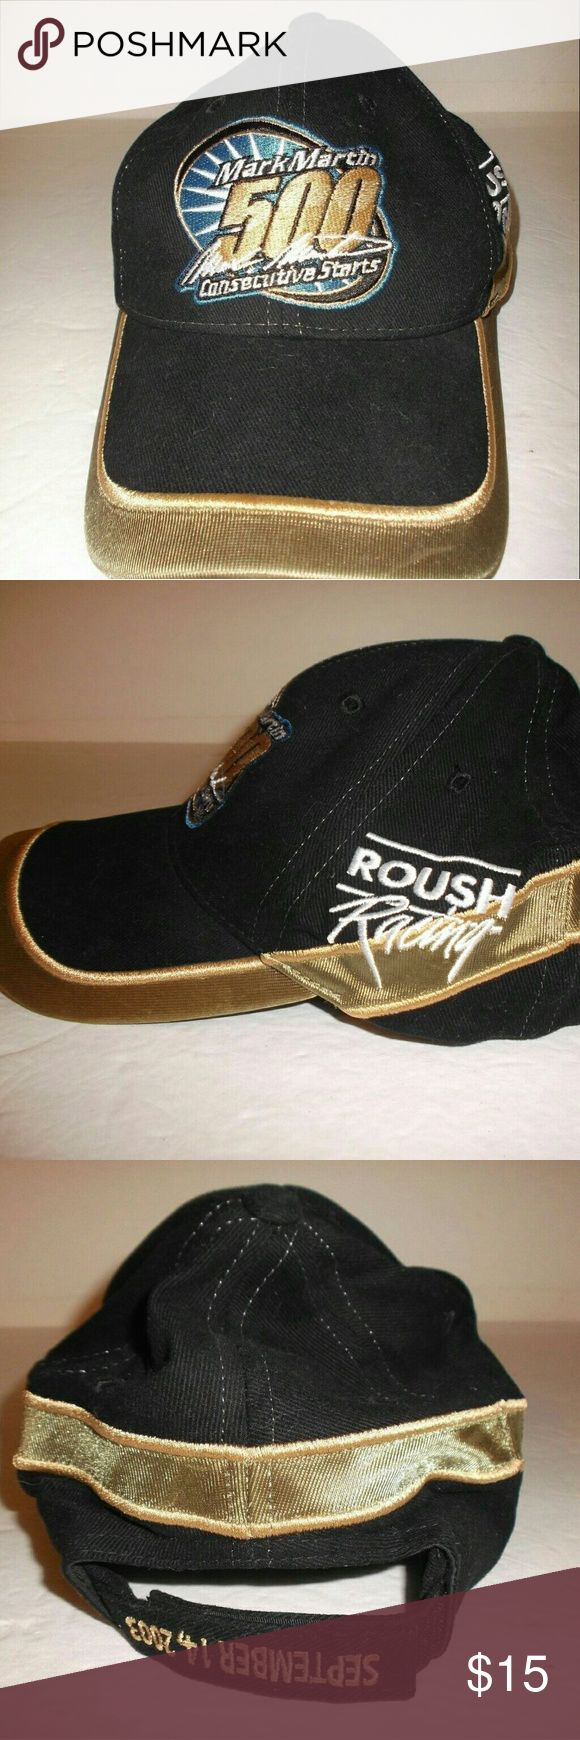 Mark Martin NASCAR # 6 Roush Racing Baseball Cap A sharp looking cap by Team Caliber.    The back of the cap is dated September 14, 2003.   Velcro adjustment in back.   Great condition,  stored but never worn Team Caliber Accessories Hats